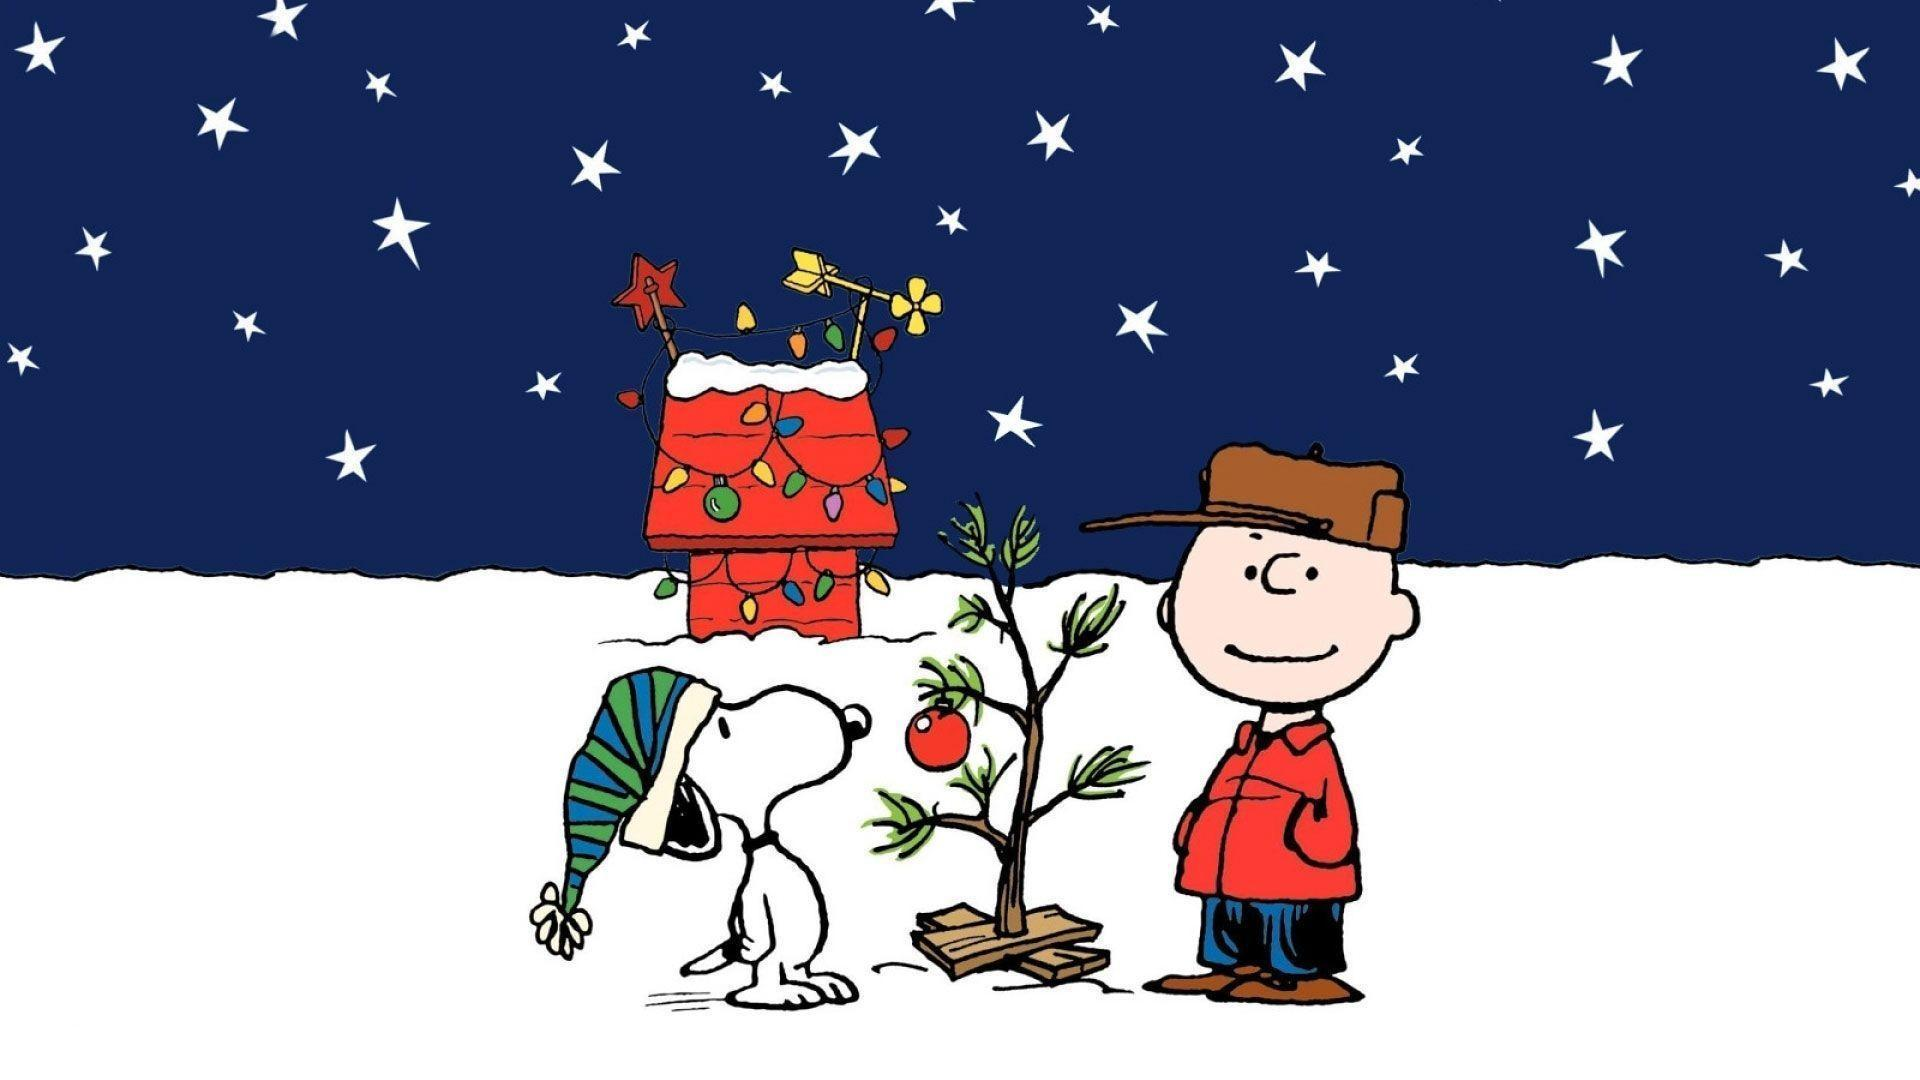 Peanuts Christmas Wallpapers